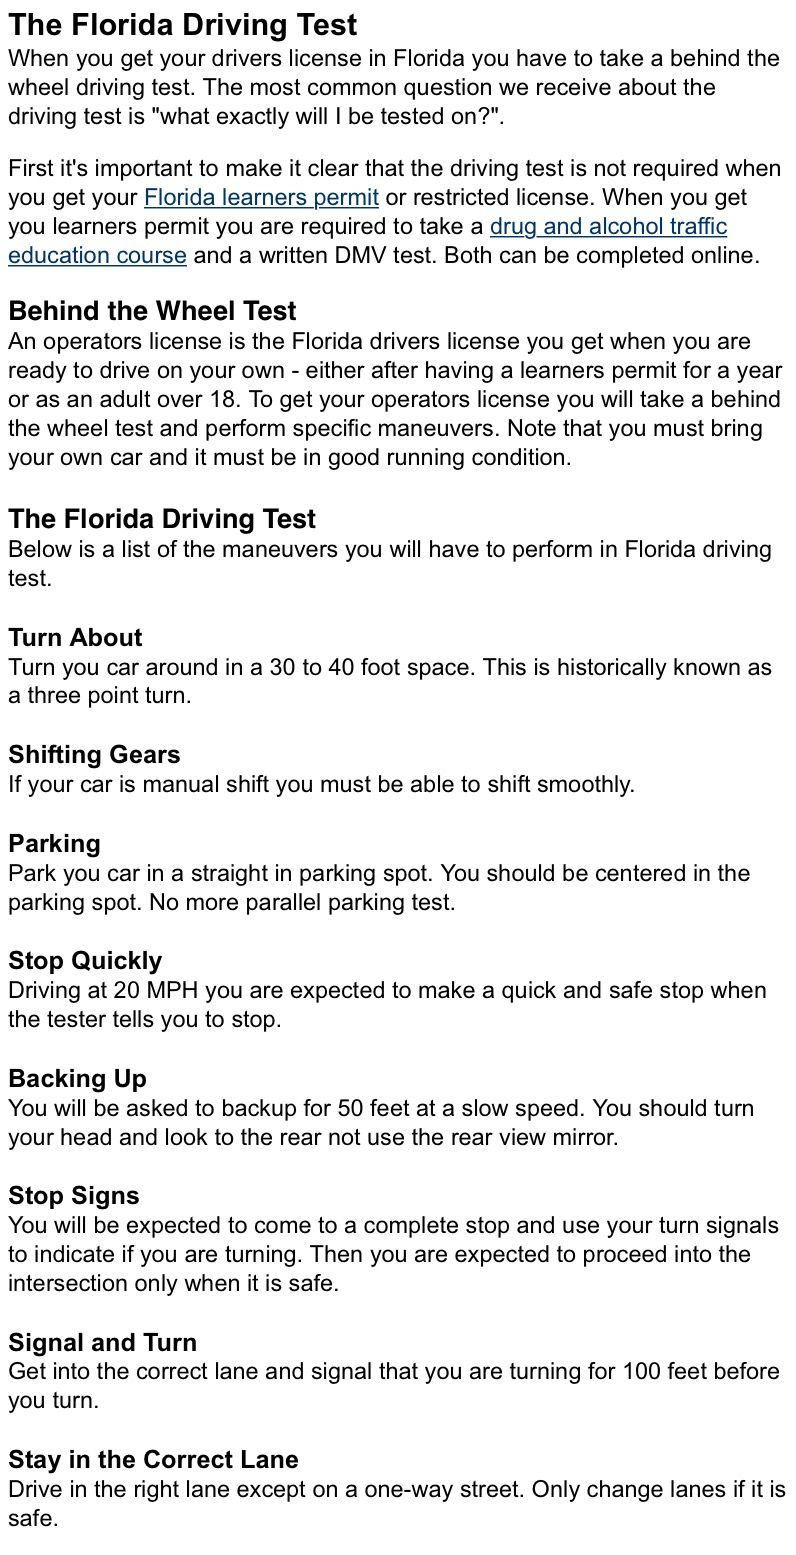 Can You Take The Drivers Test Online In Florida